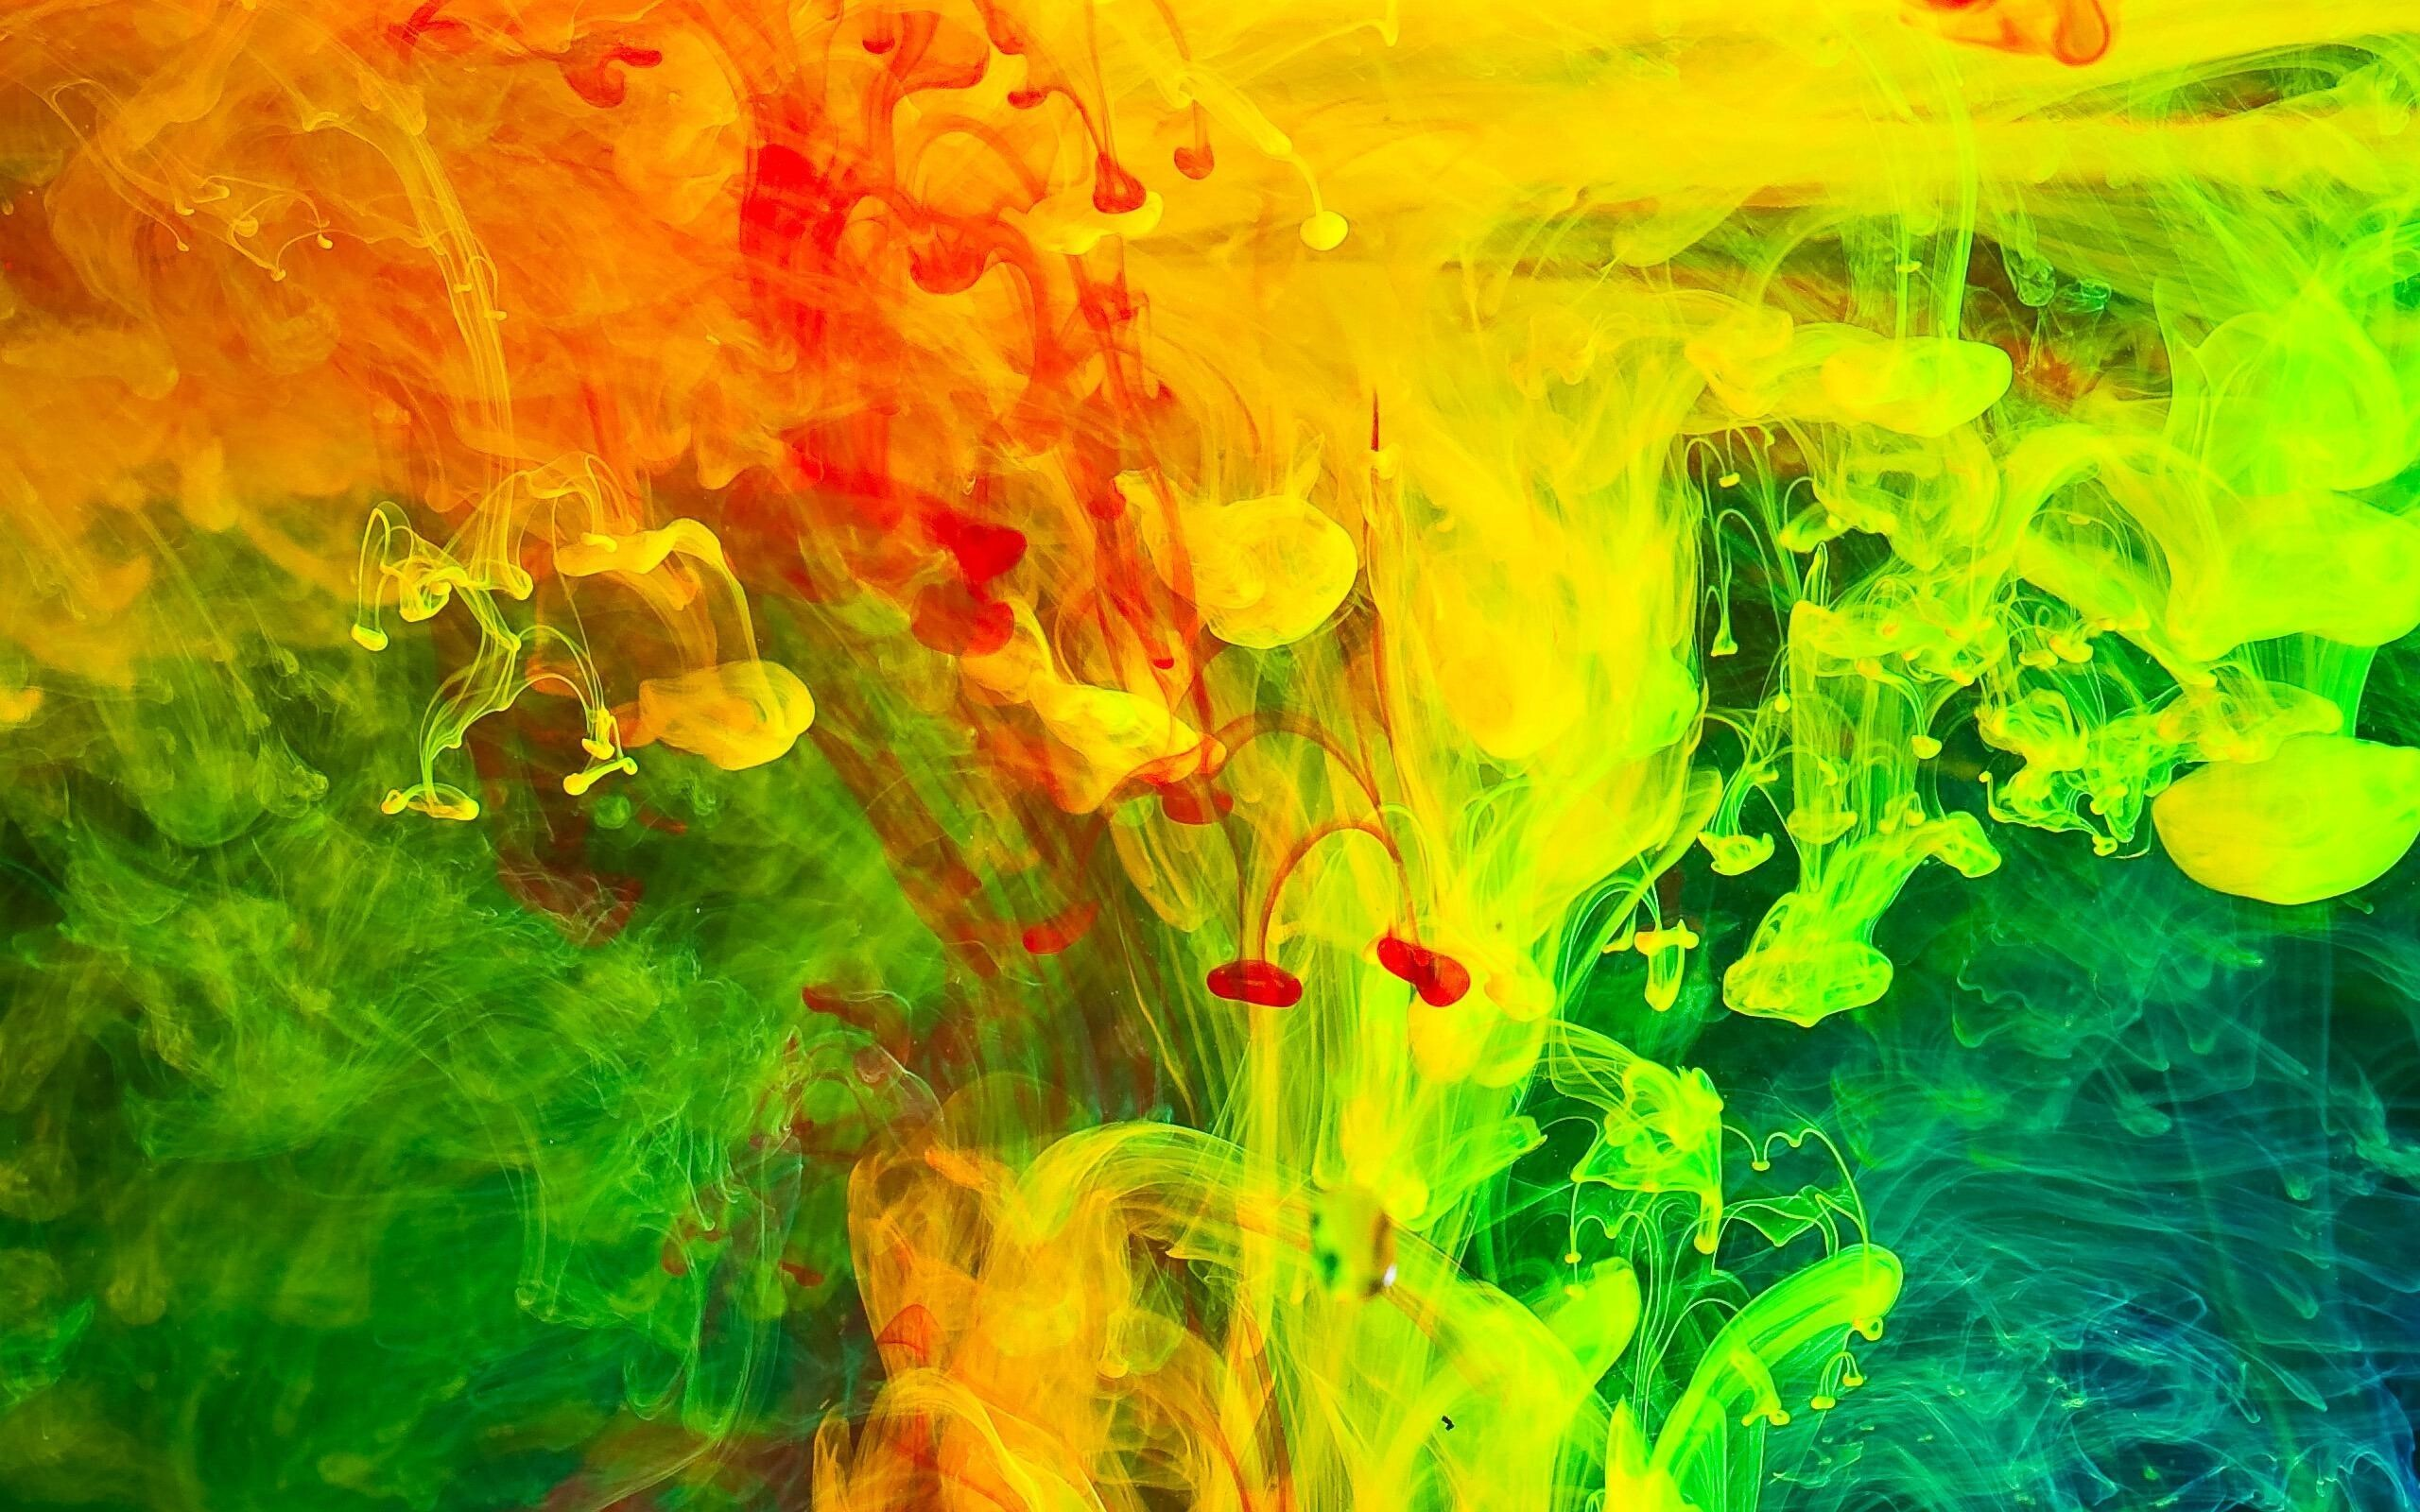 Colorful Abstract Image Wallpaper